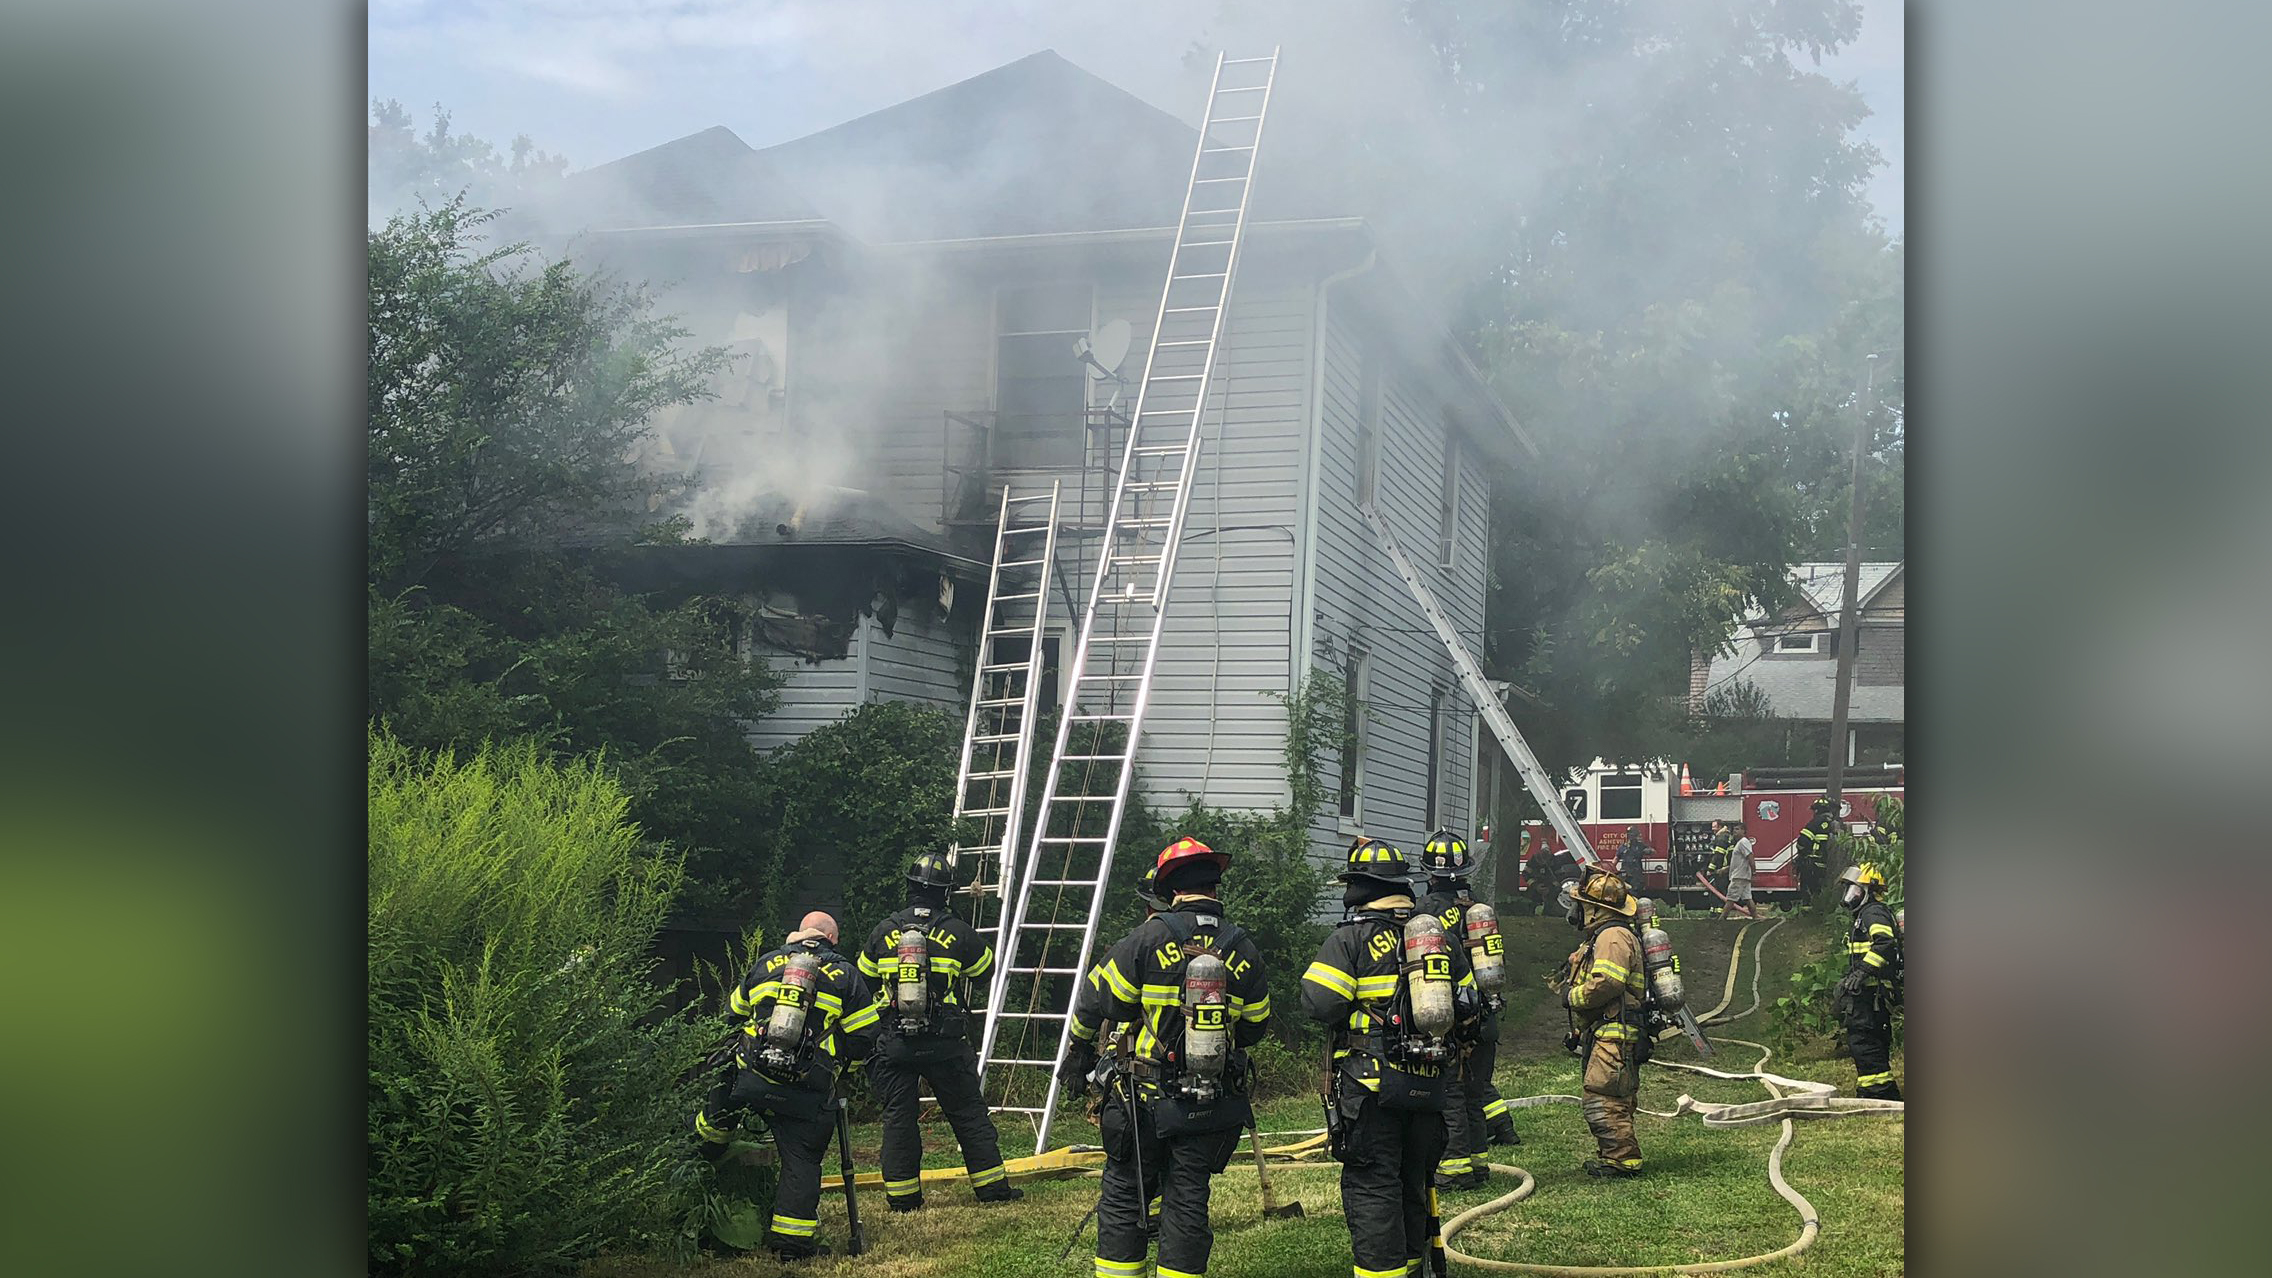 Fire at duplex on East Chestnut Street in Asheville, August 24, 2020. (From: Asheville Fire Department)